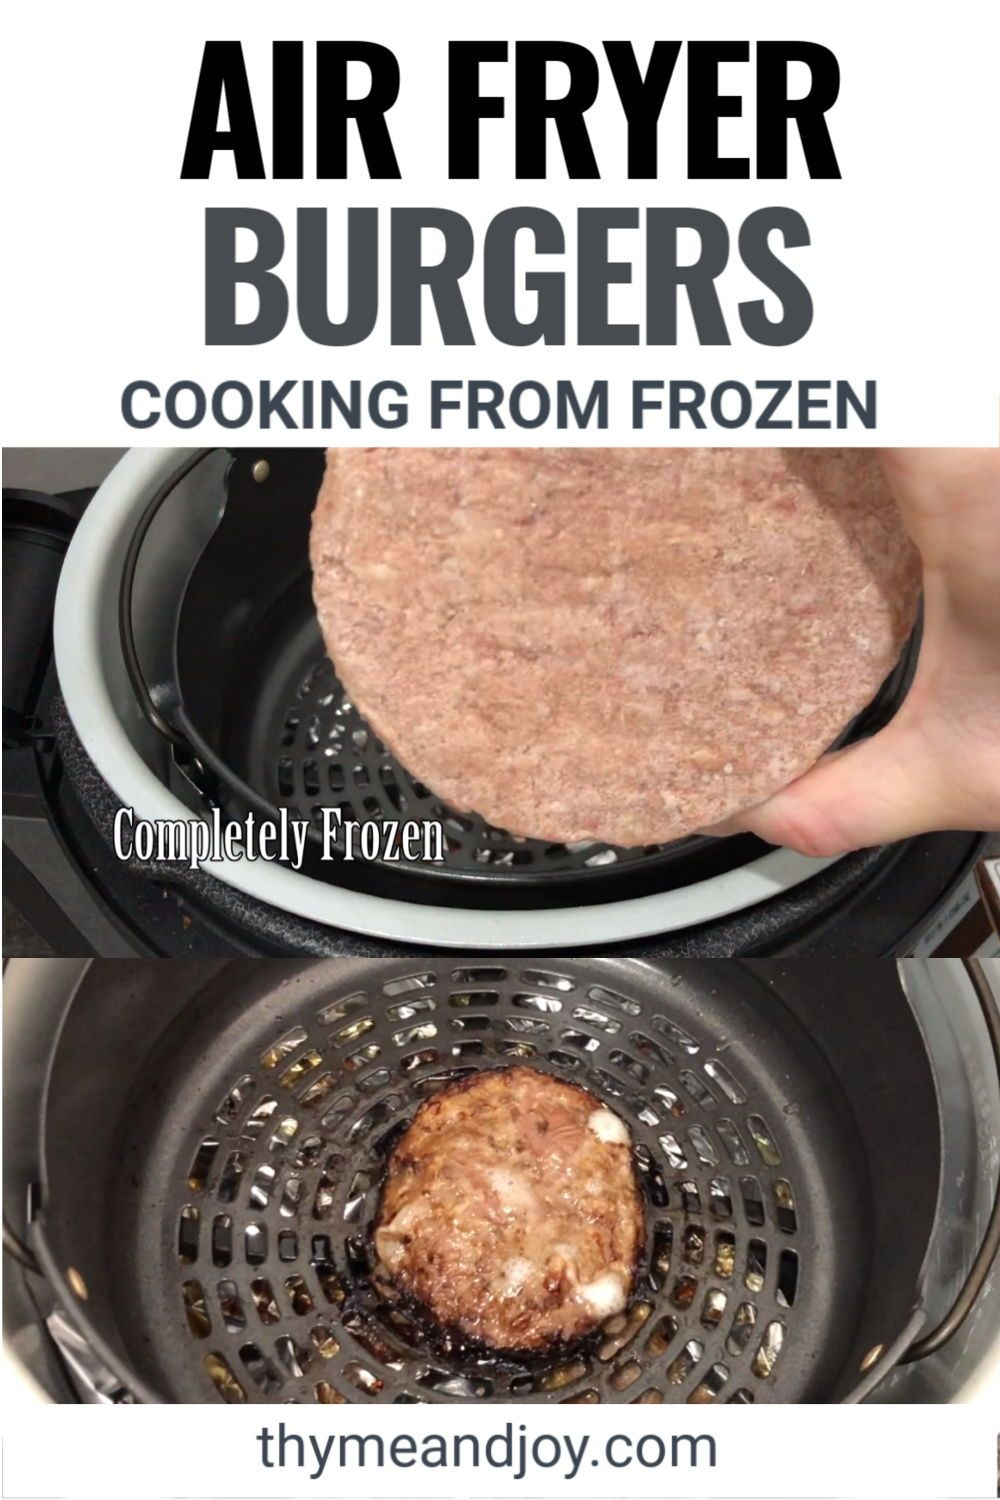 Air Fryer Burgers Recipe in 2020 Recipes, Real food